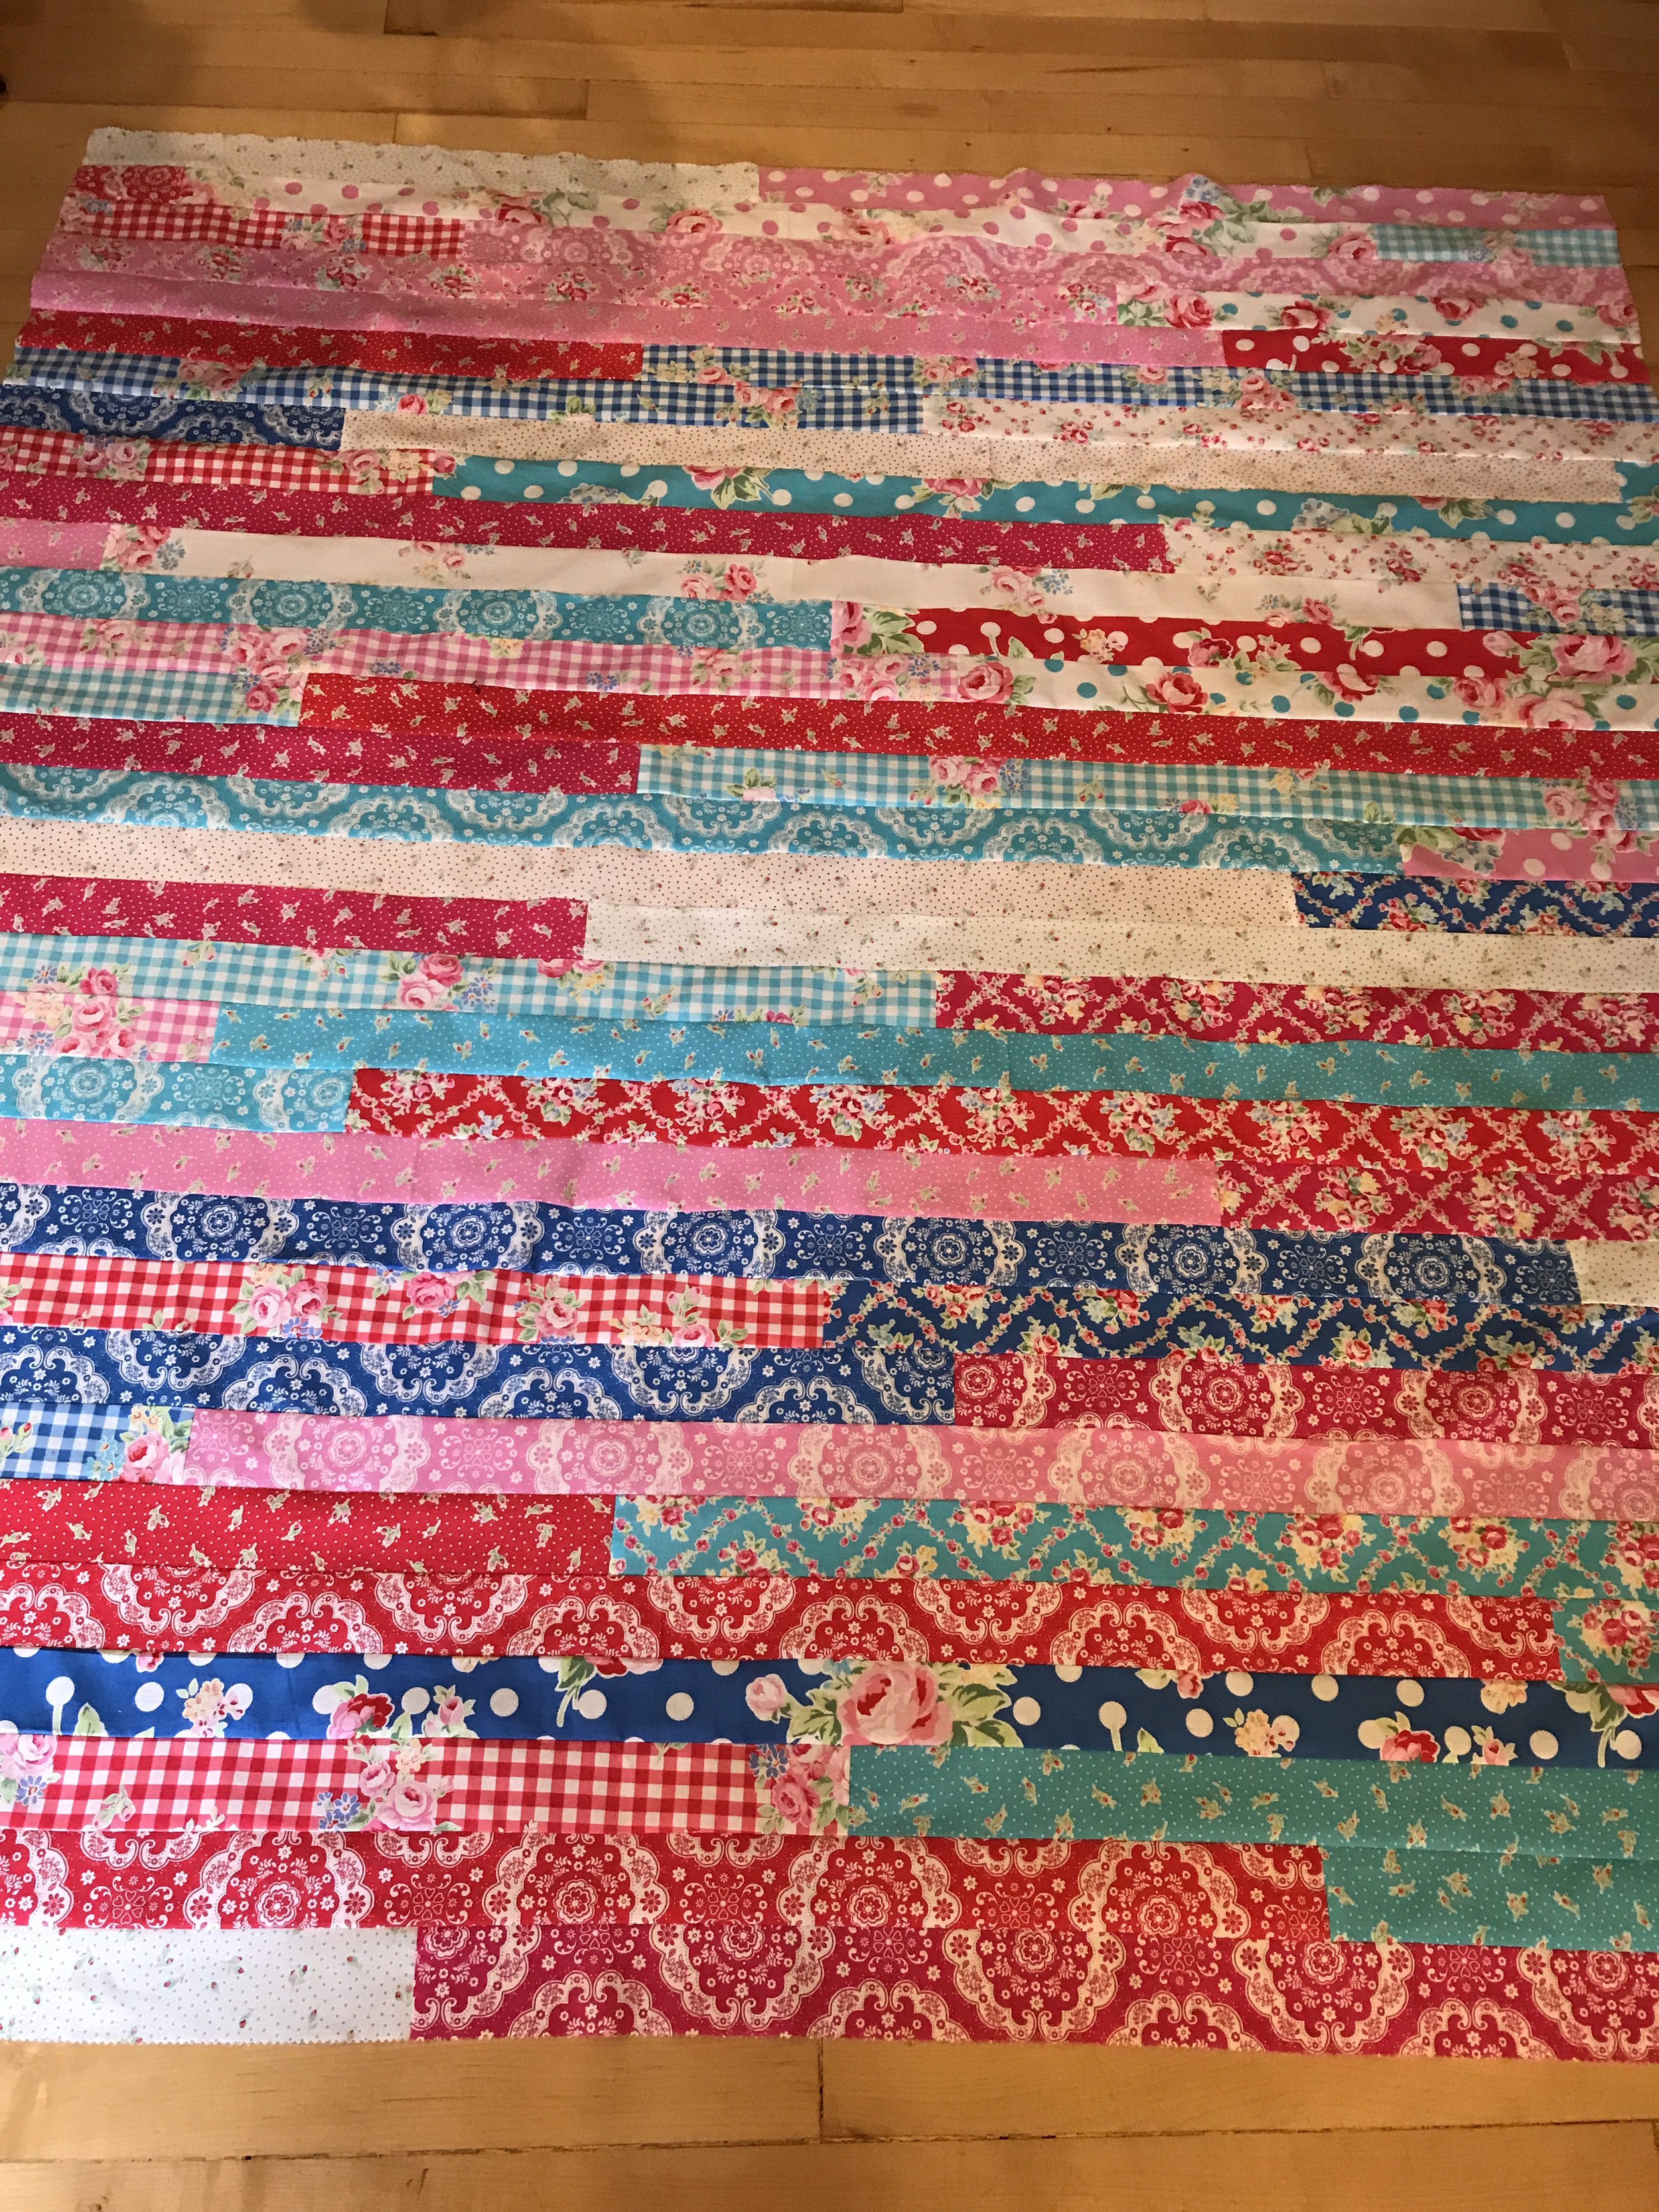 Have you ever made one of those  jelly roll races quilt ?